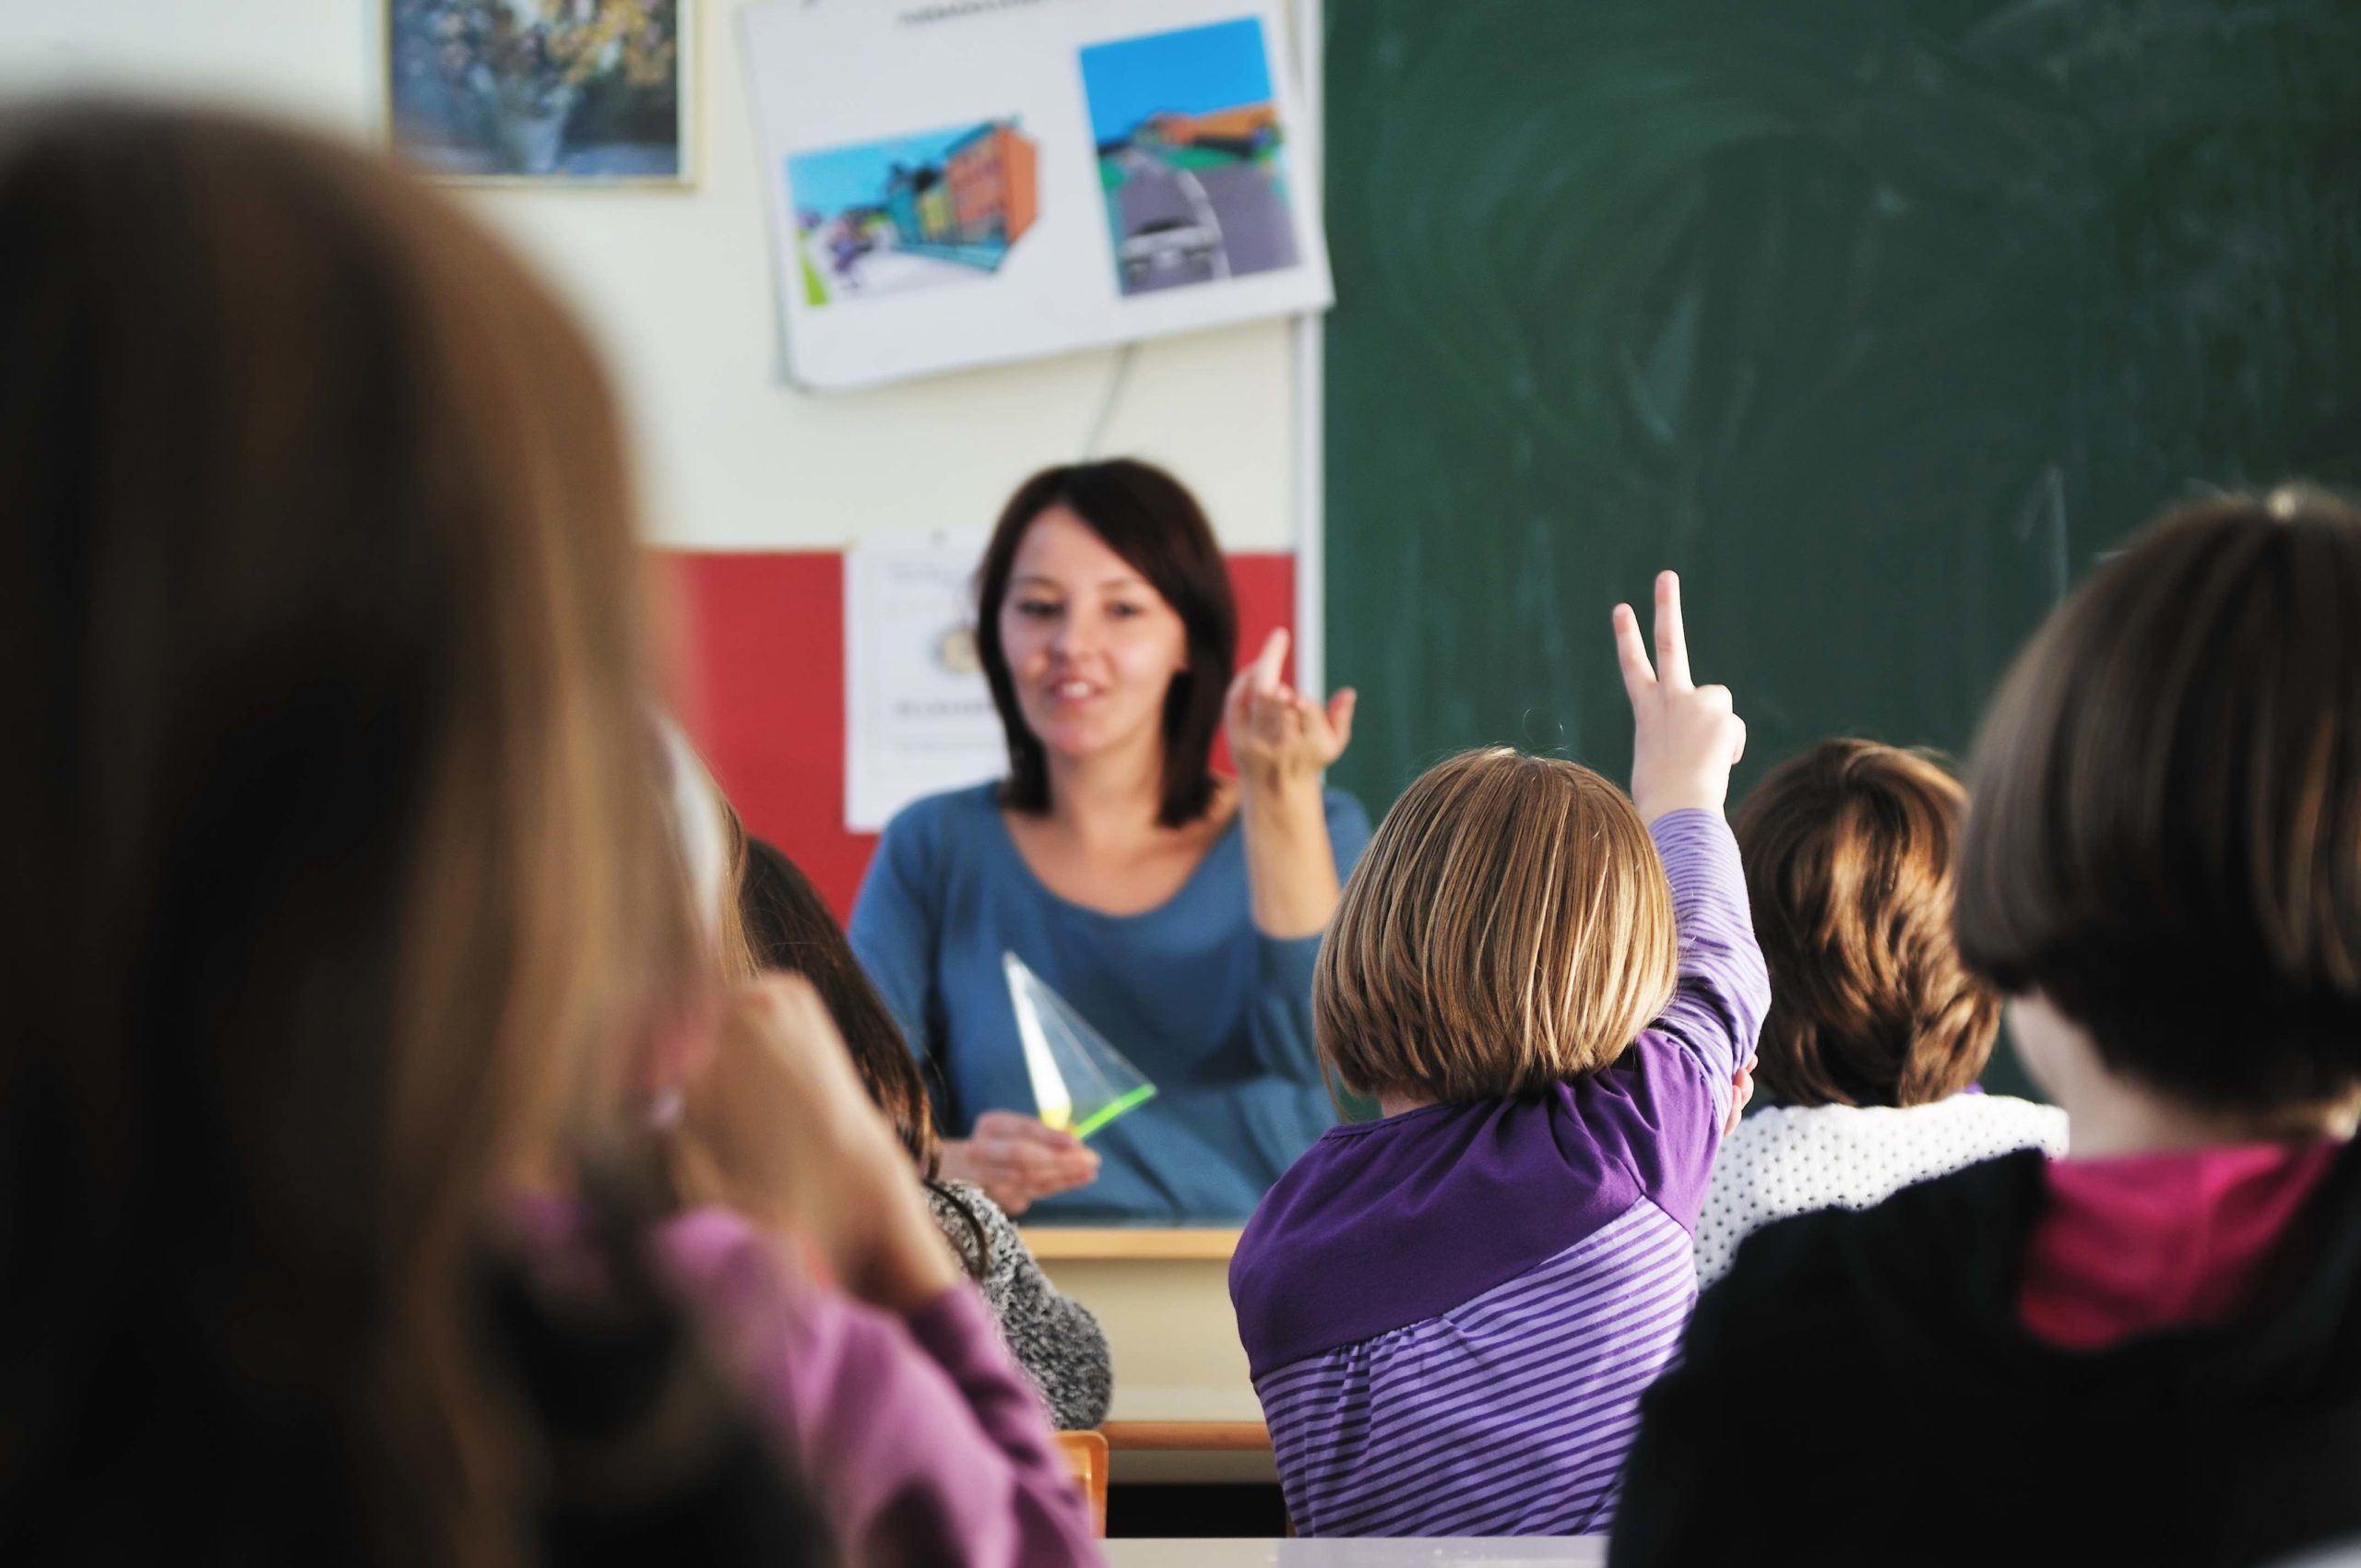 Elementary school teacher sitting at her desk calling on a young student who has her hand raised.